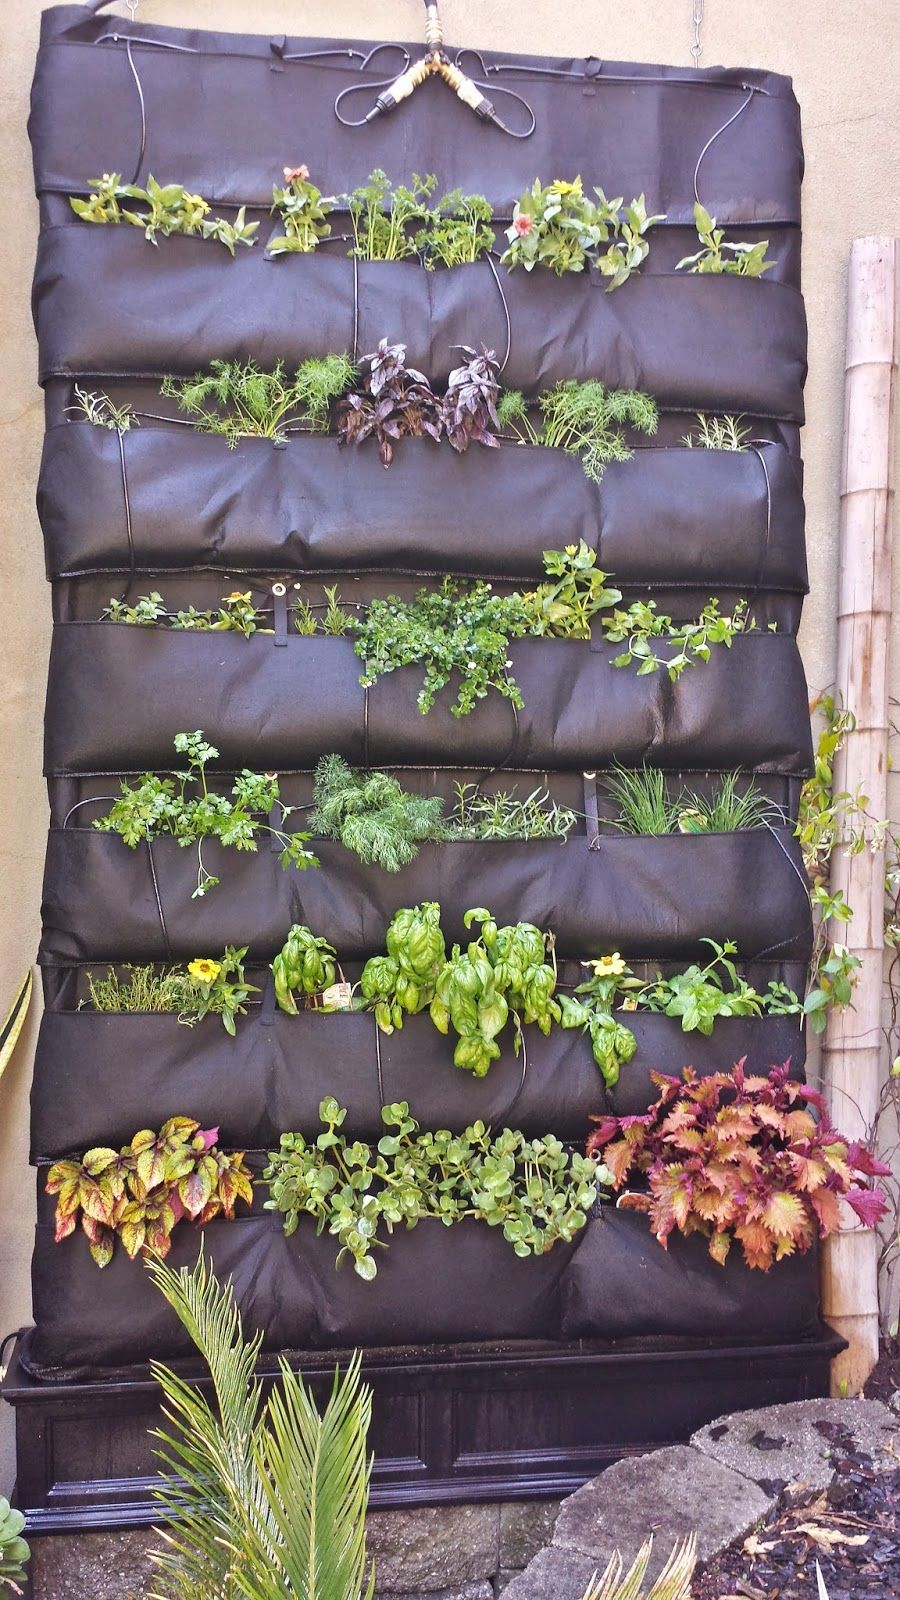 DIY Hydroponic System Grows Herbs On The Wall